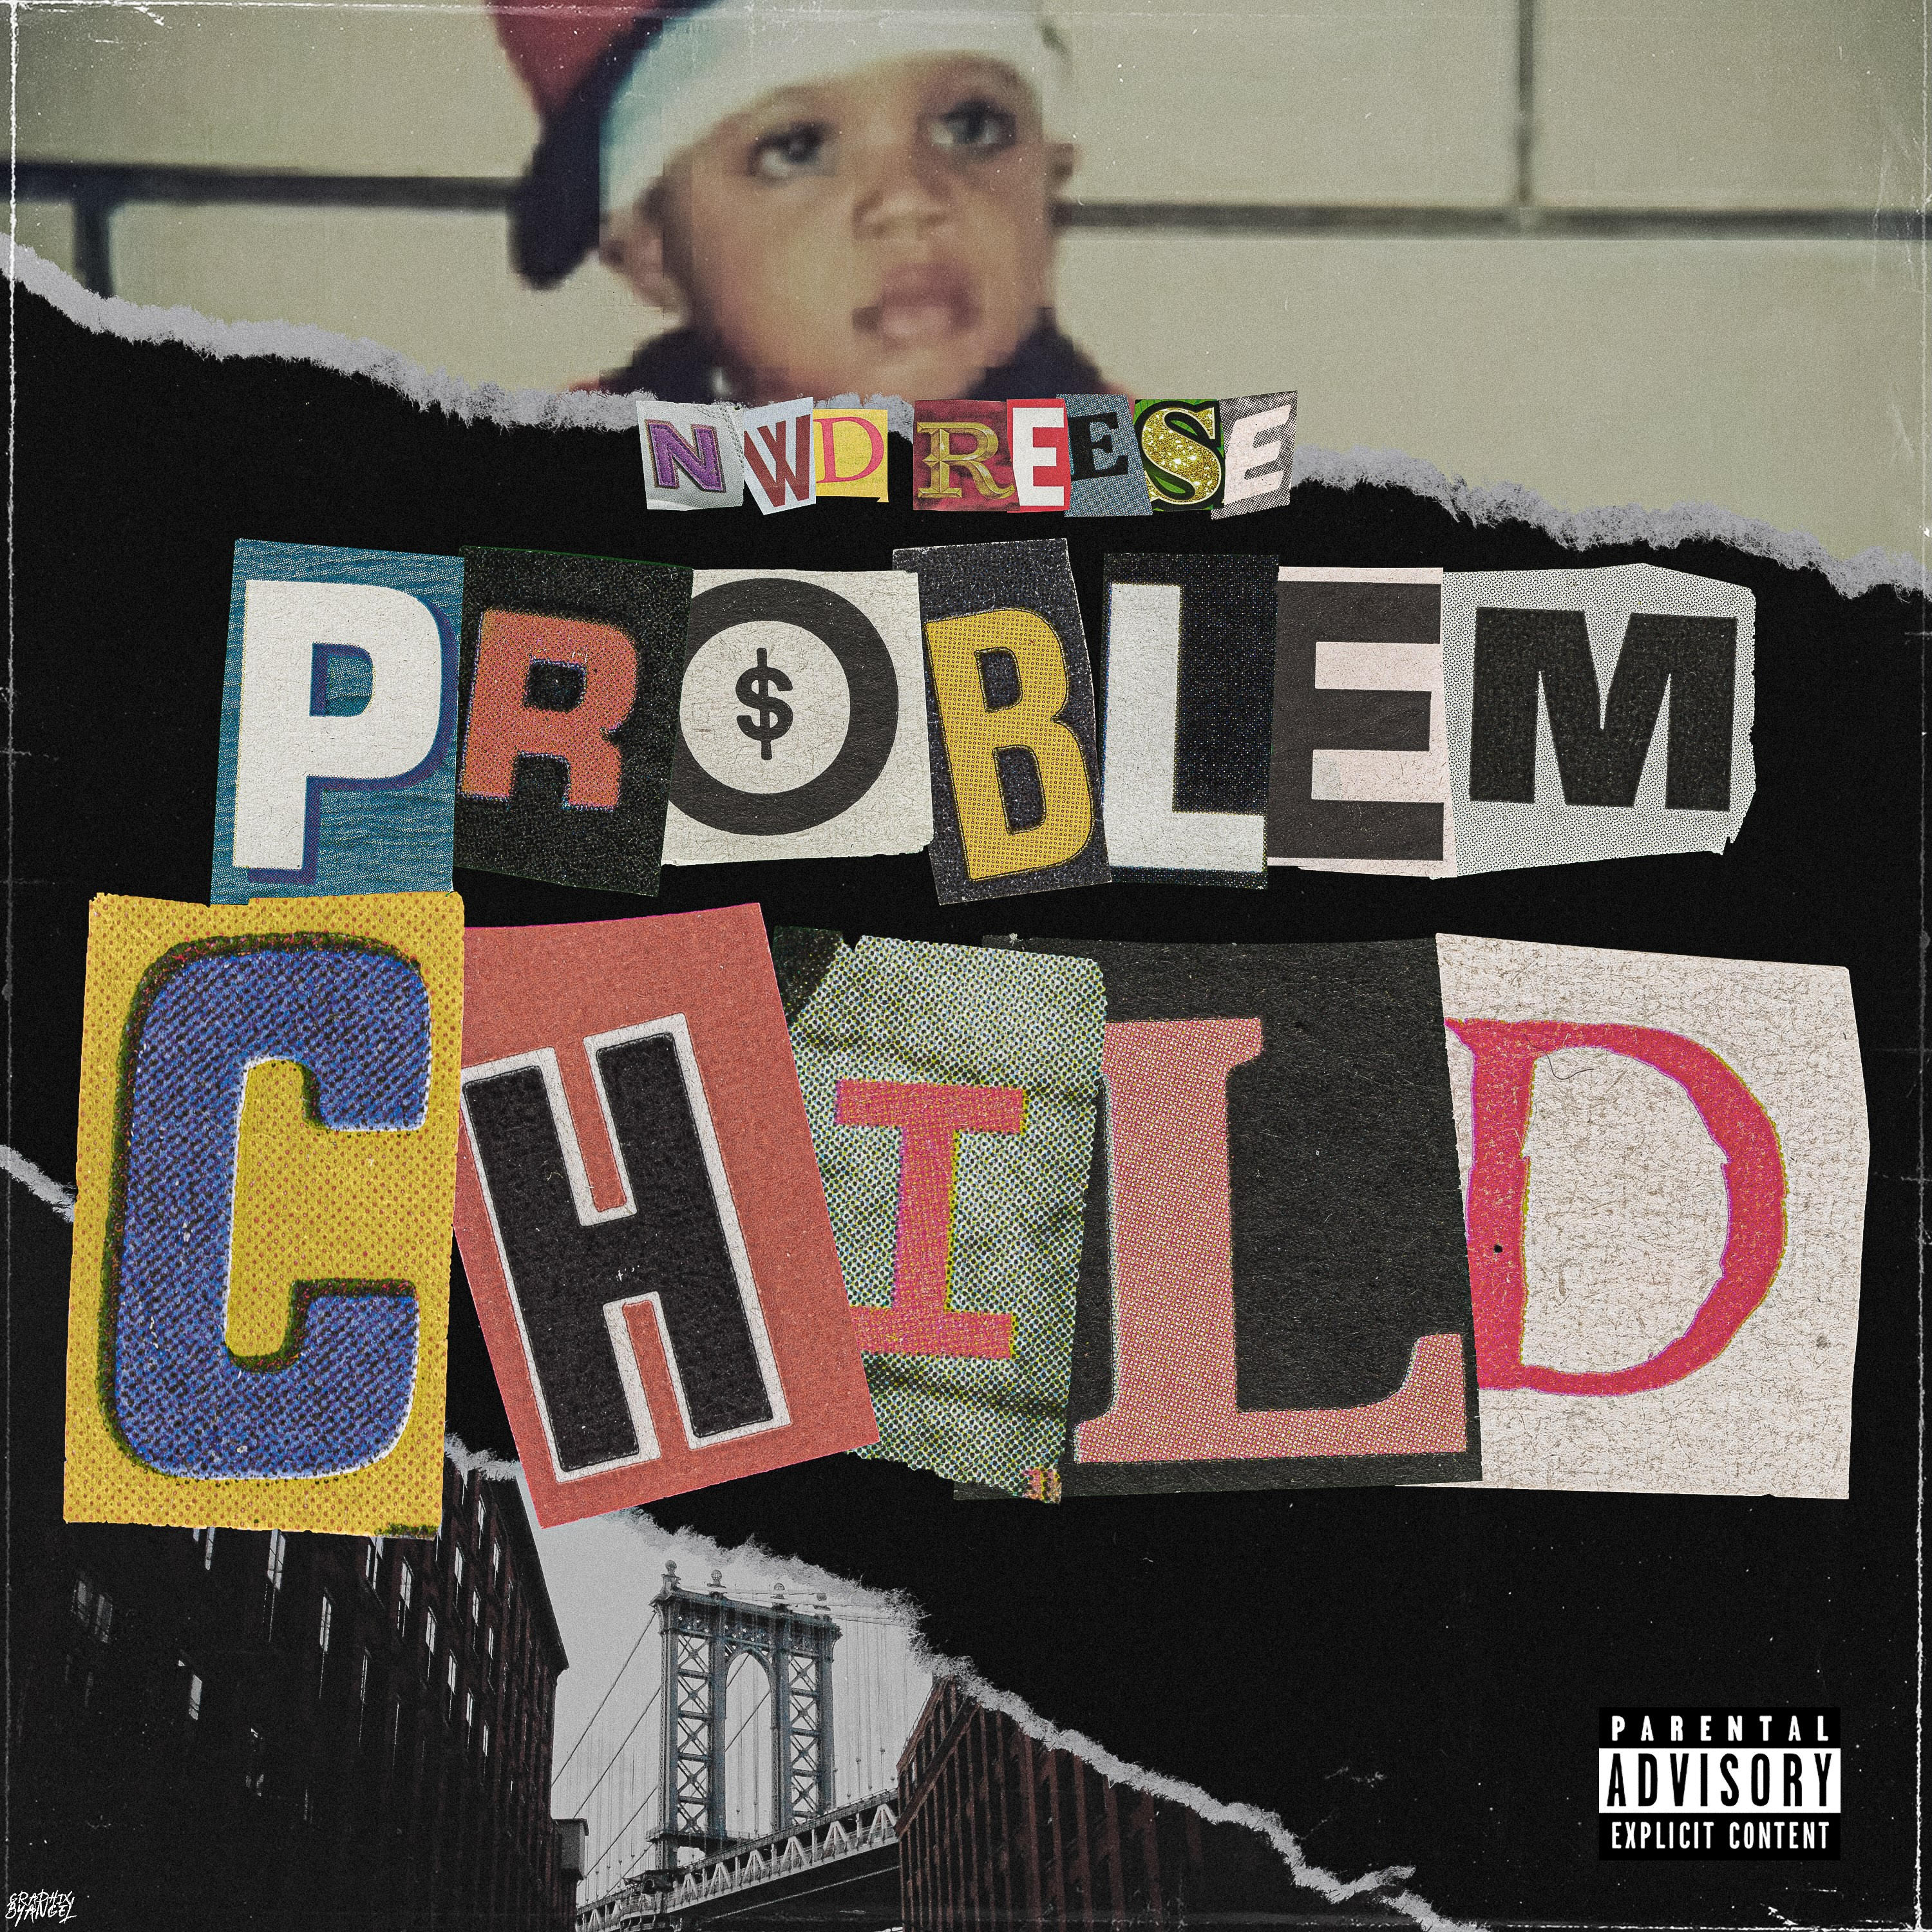 NWD Reese Problem Child Cover Art